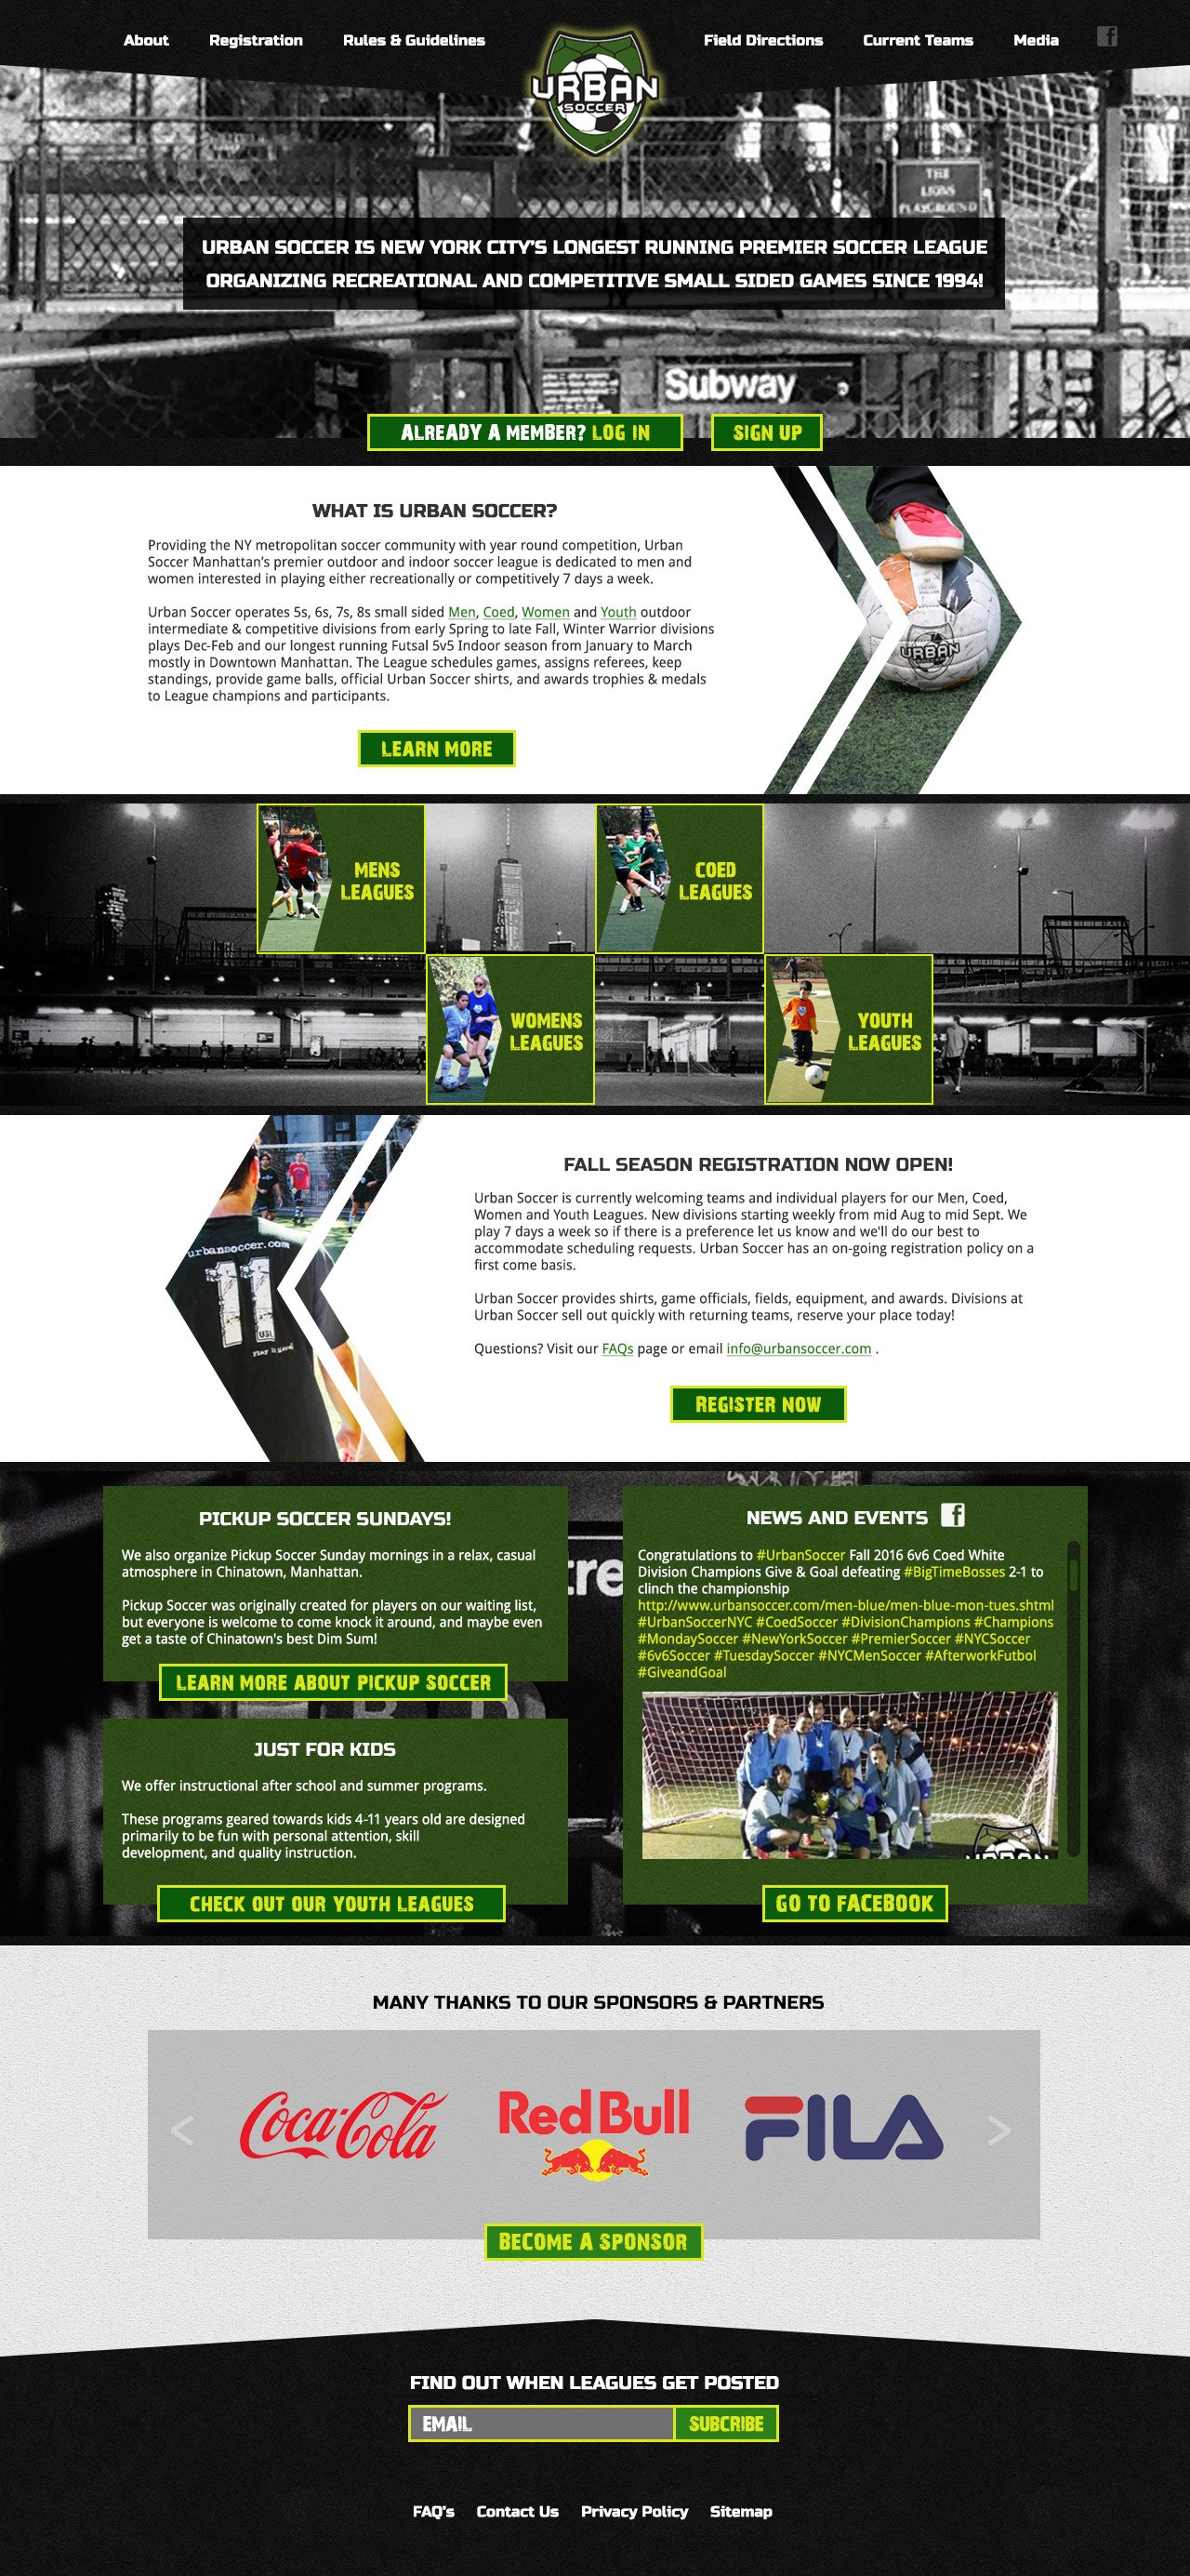 Urban Soccer NYC Home Page